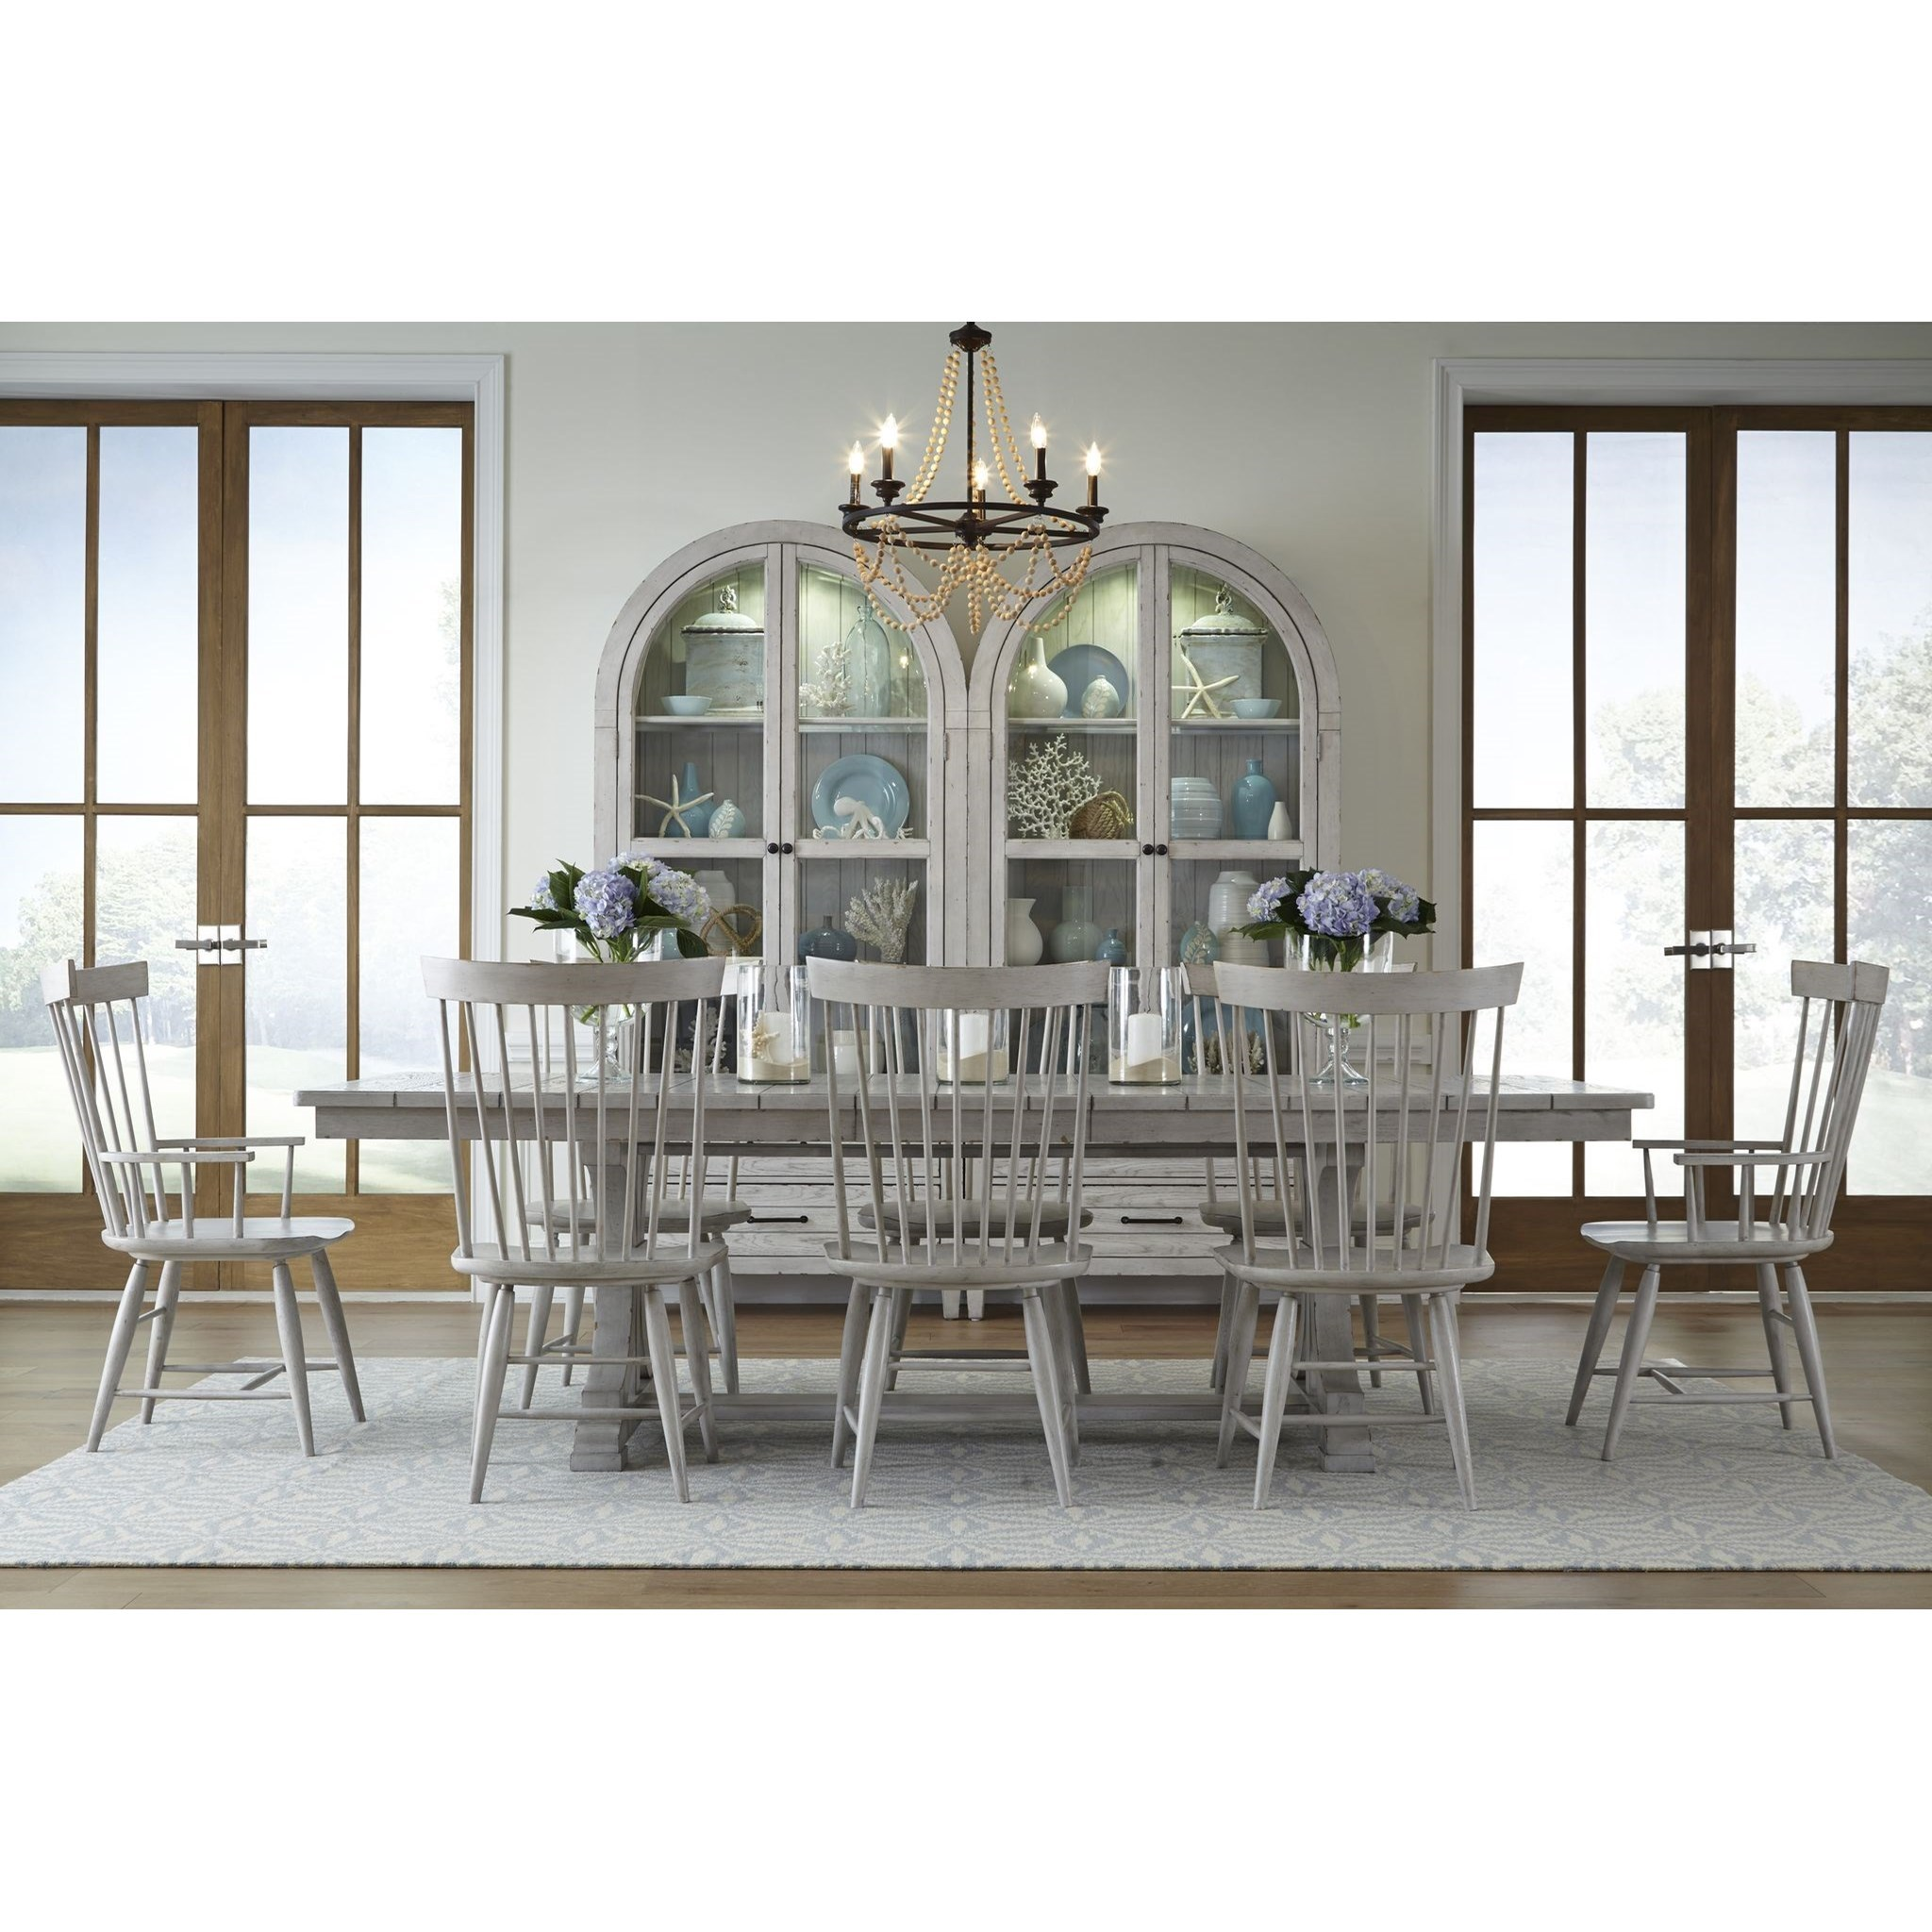 Belhaven Formal Dining Room Group by Legacy Classic at Stoney Creek Furniture